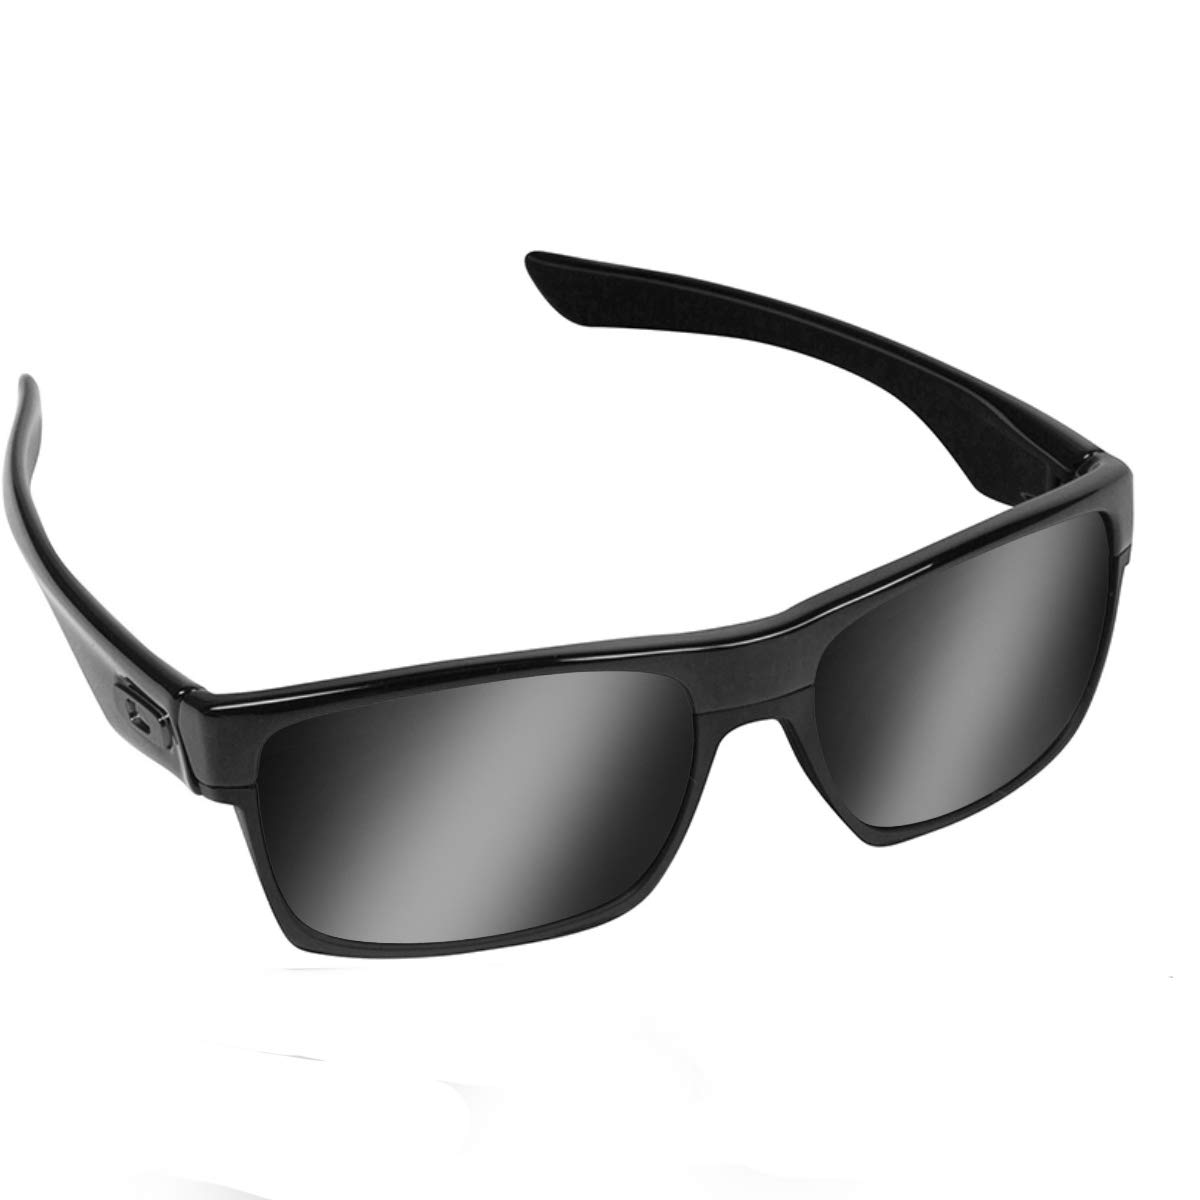 119f4dcd74af9 TWOFACE Replacement Lenses Polarized Black Iridium by SEEK fits OAKLEY at  Amazon Men s Clothing store